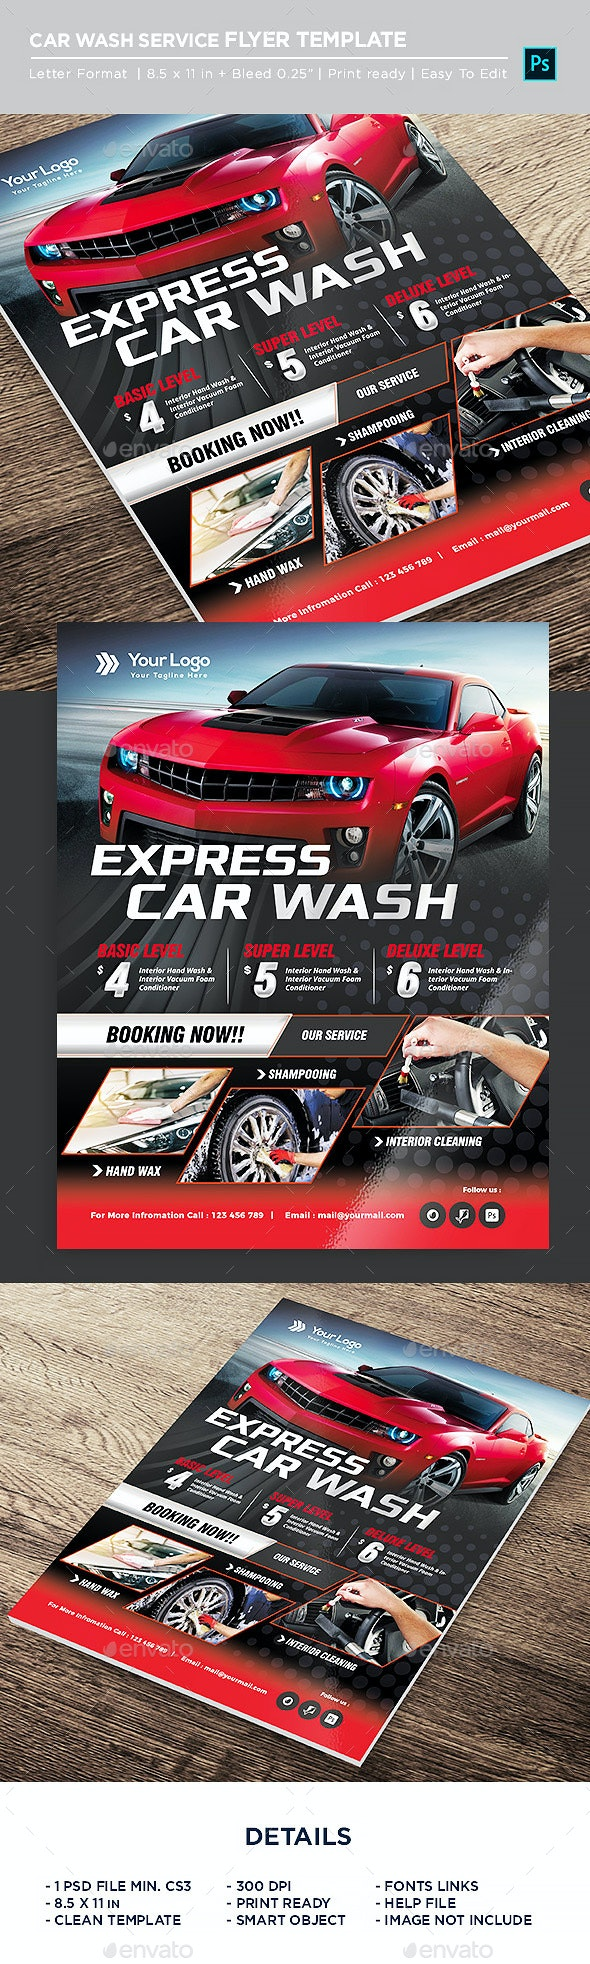 Express Car Wash Flyer - Corporate Flyers